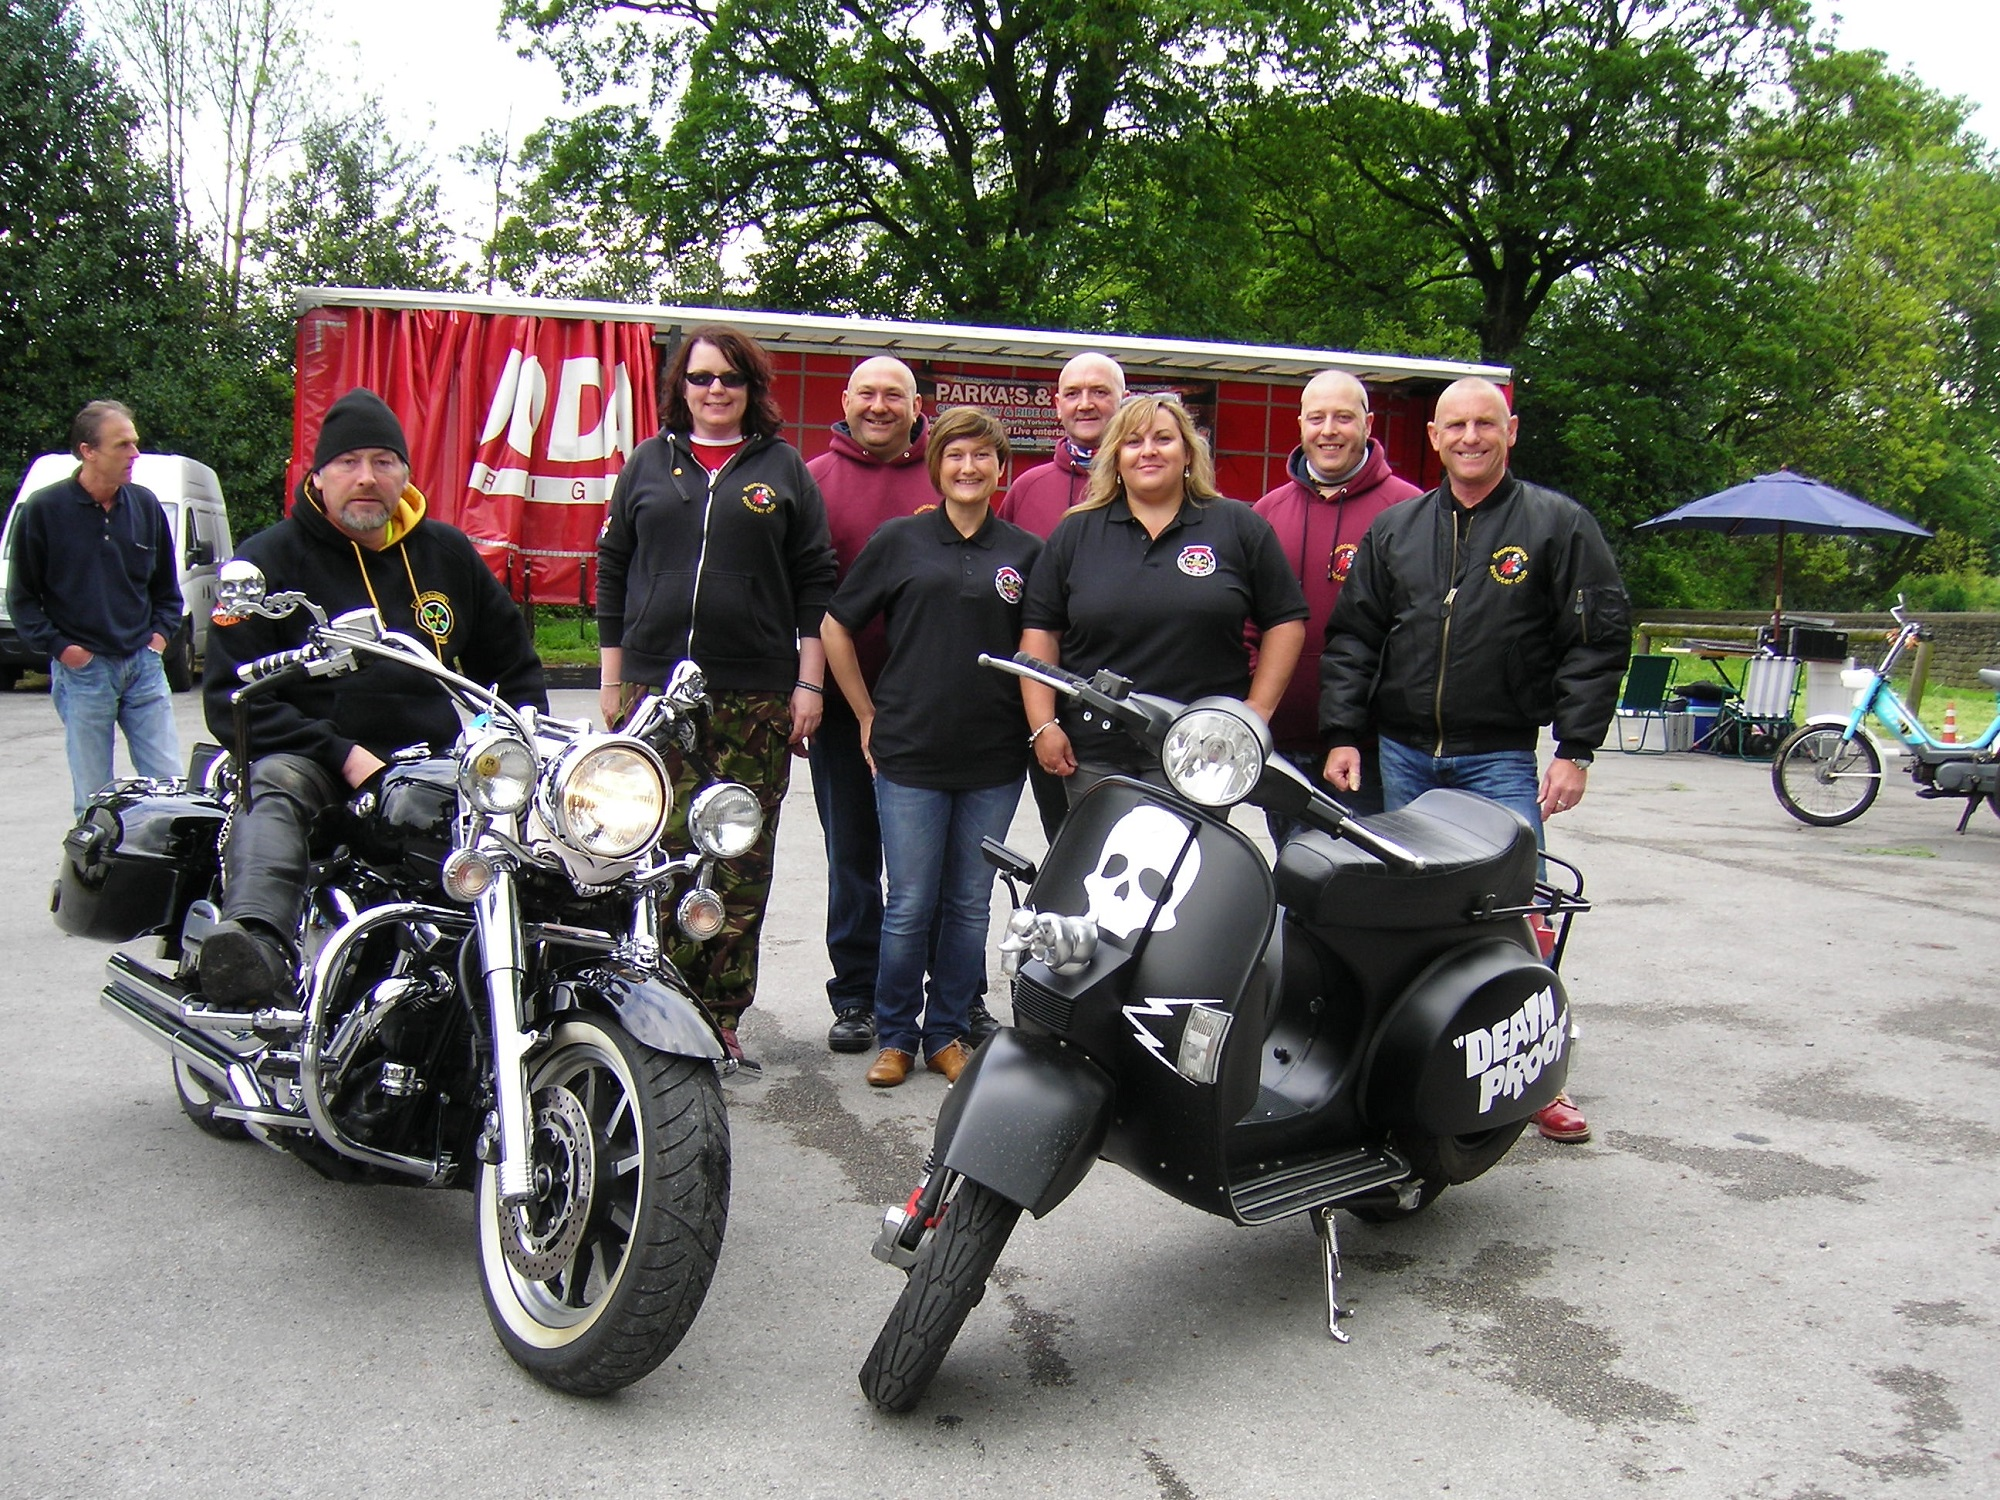 Participants, including members of the Rapscallions Scooter Club, at the Bay Horse car park in Sutton during the Parkas and Leathers event